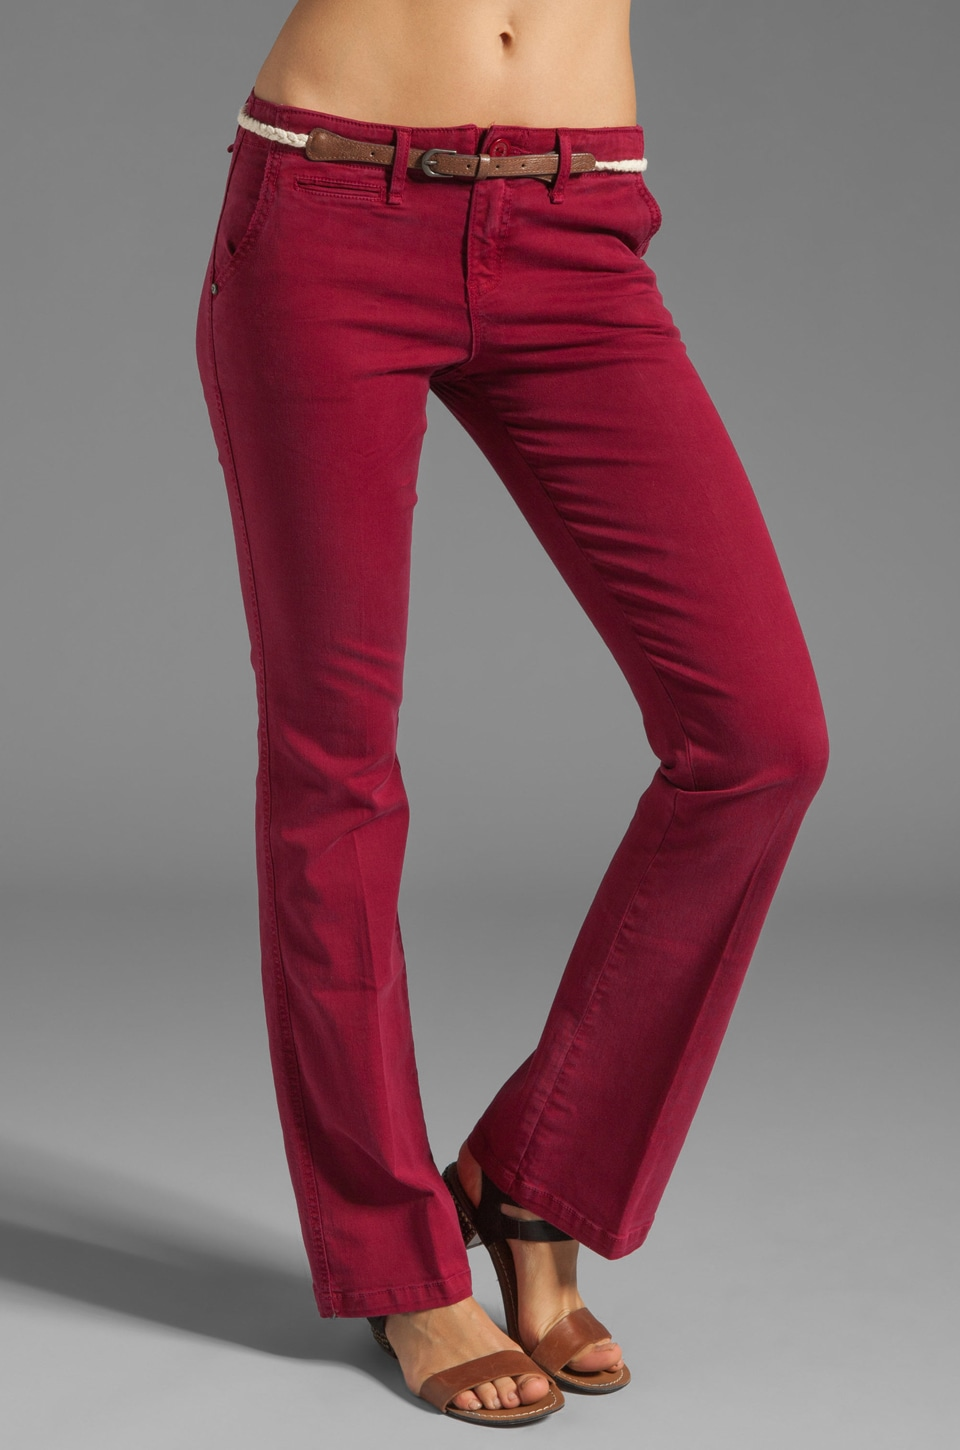 Sanctuary Liberty Chino Trouser with Belt in Burgundy